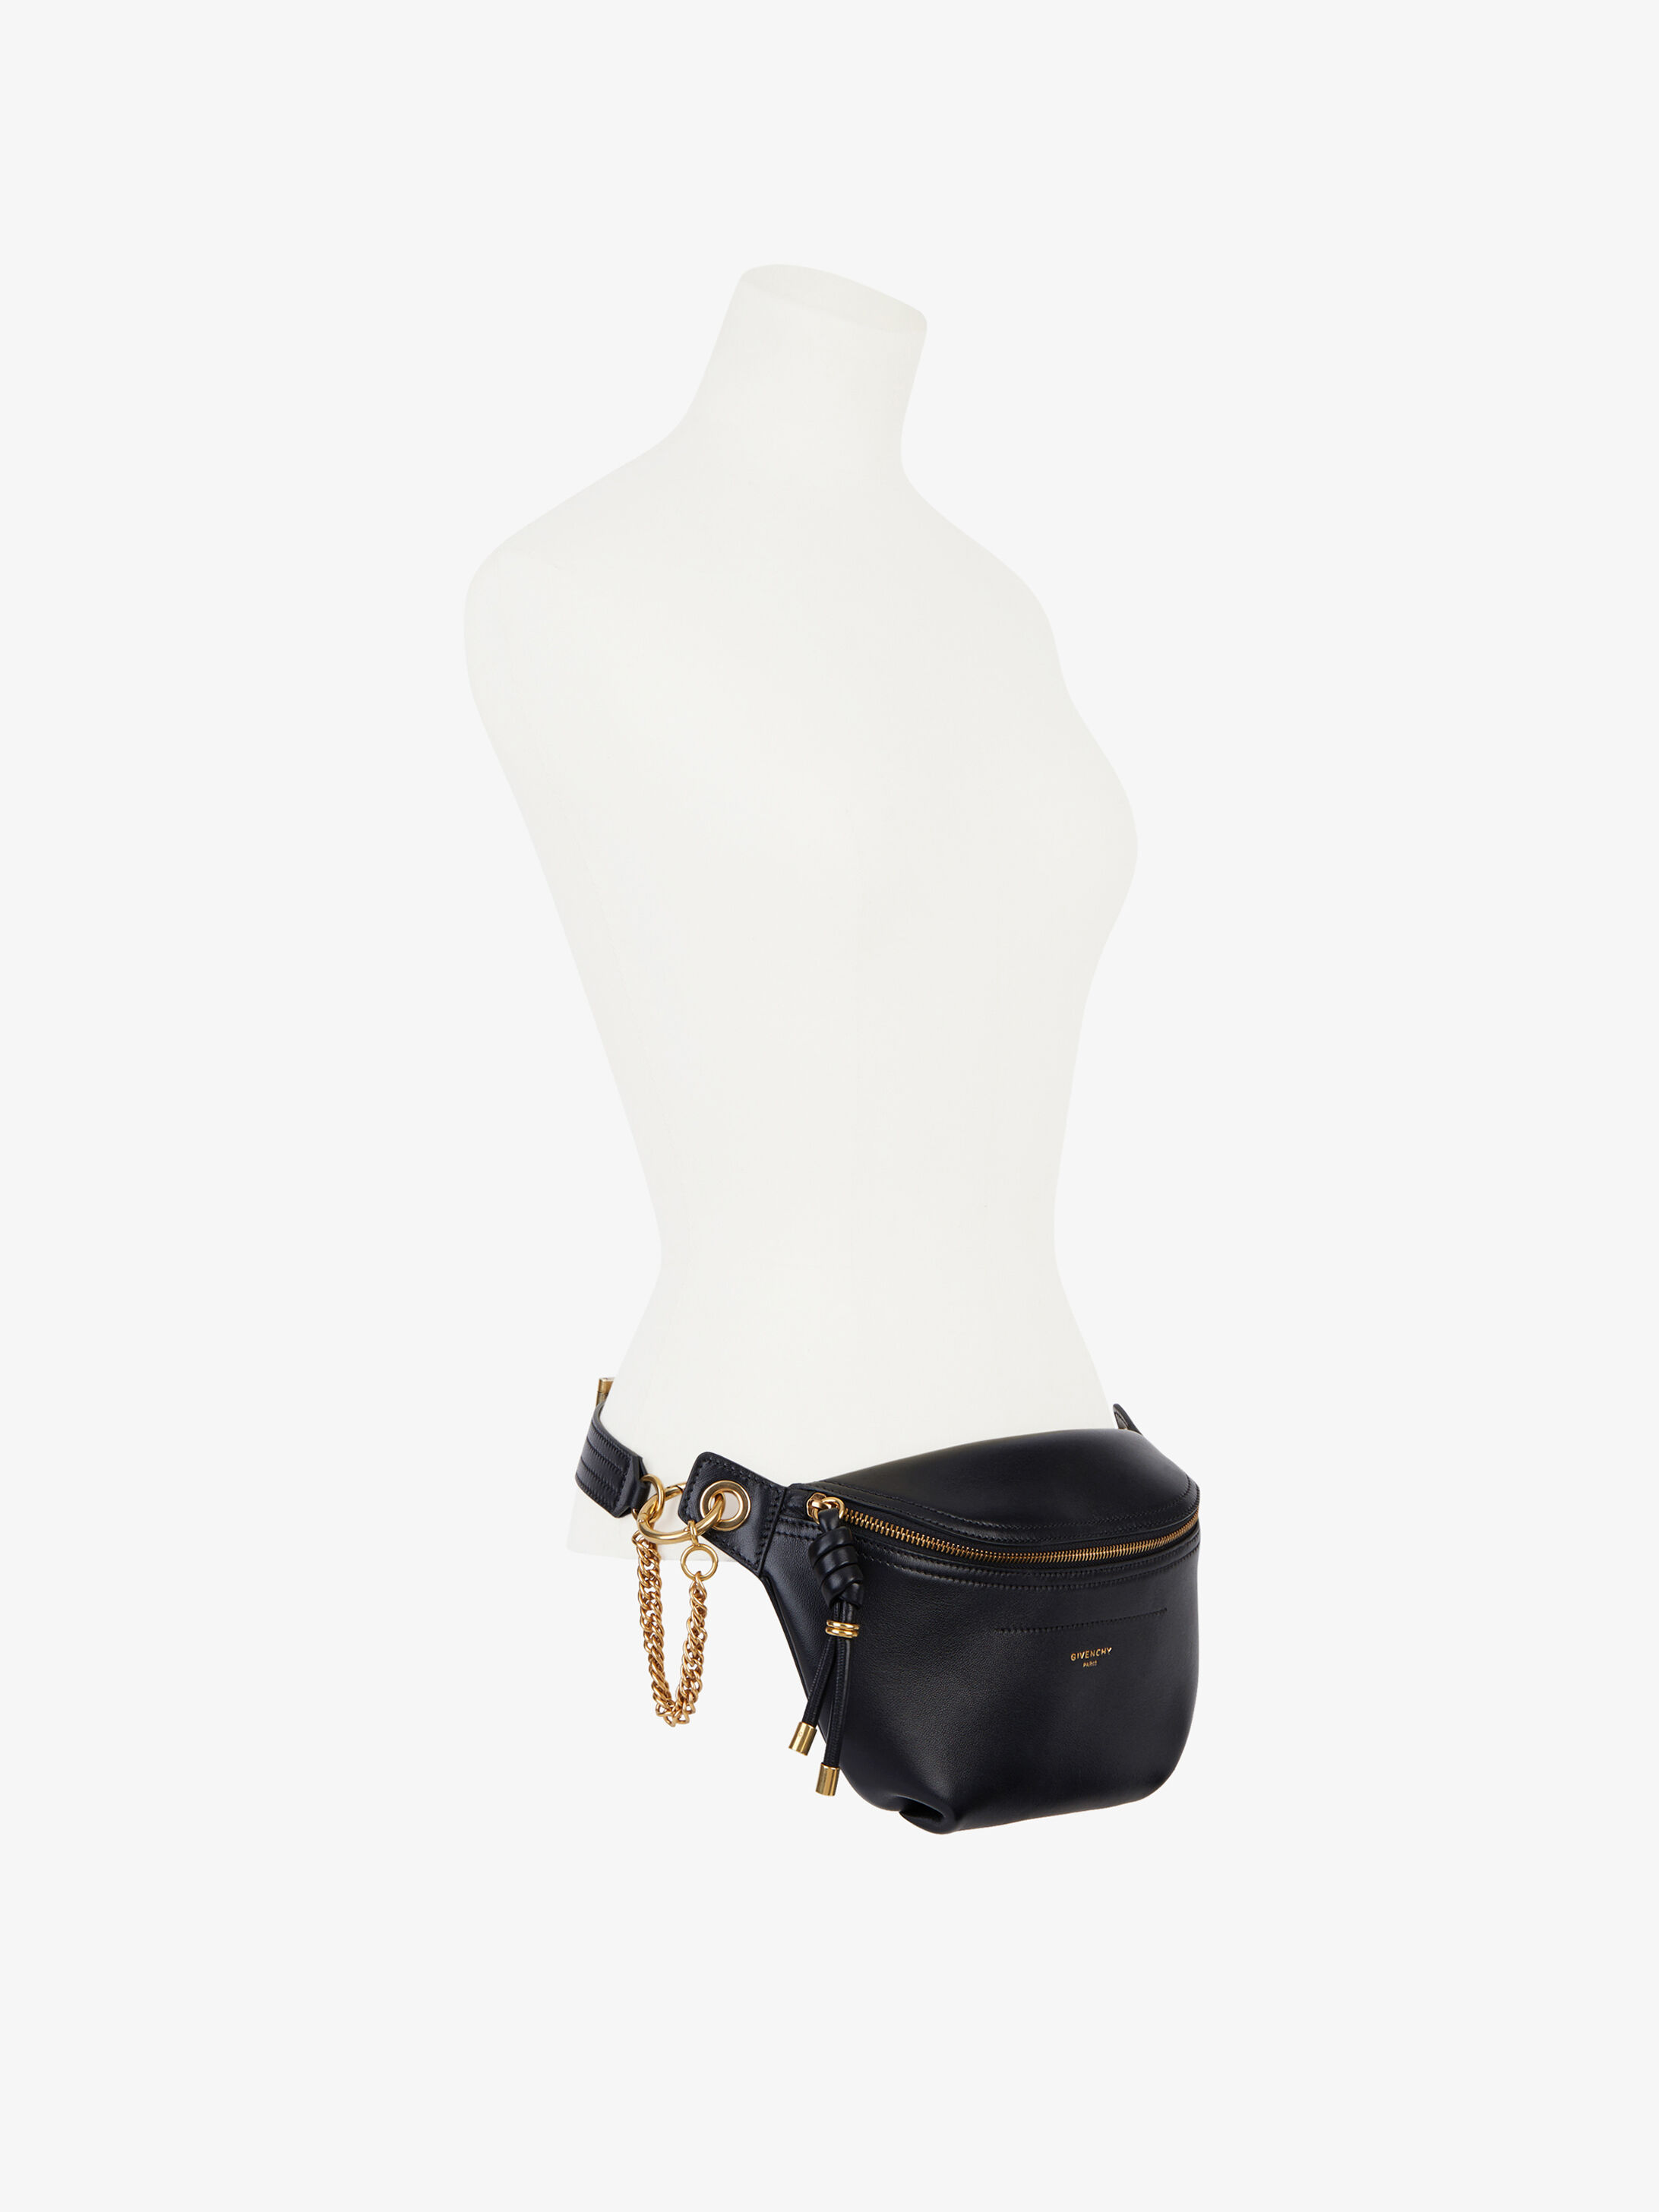 68311a92a0c1 Women s Cross-body Bags collection by Givenchy.